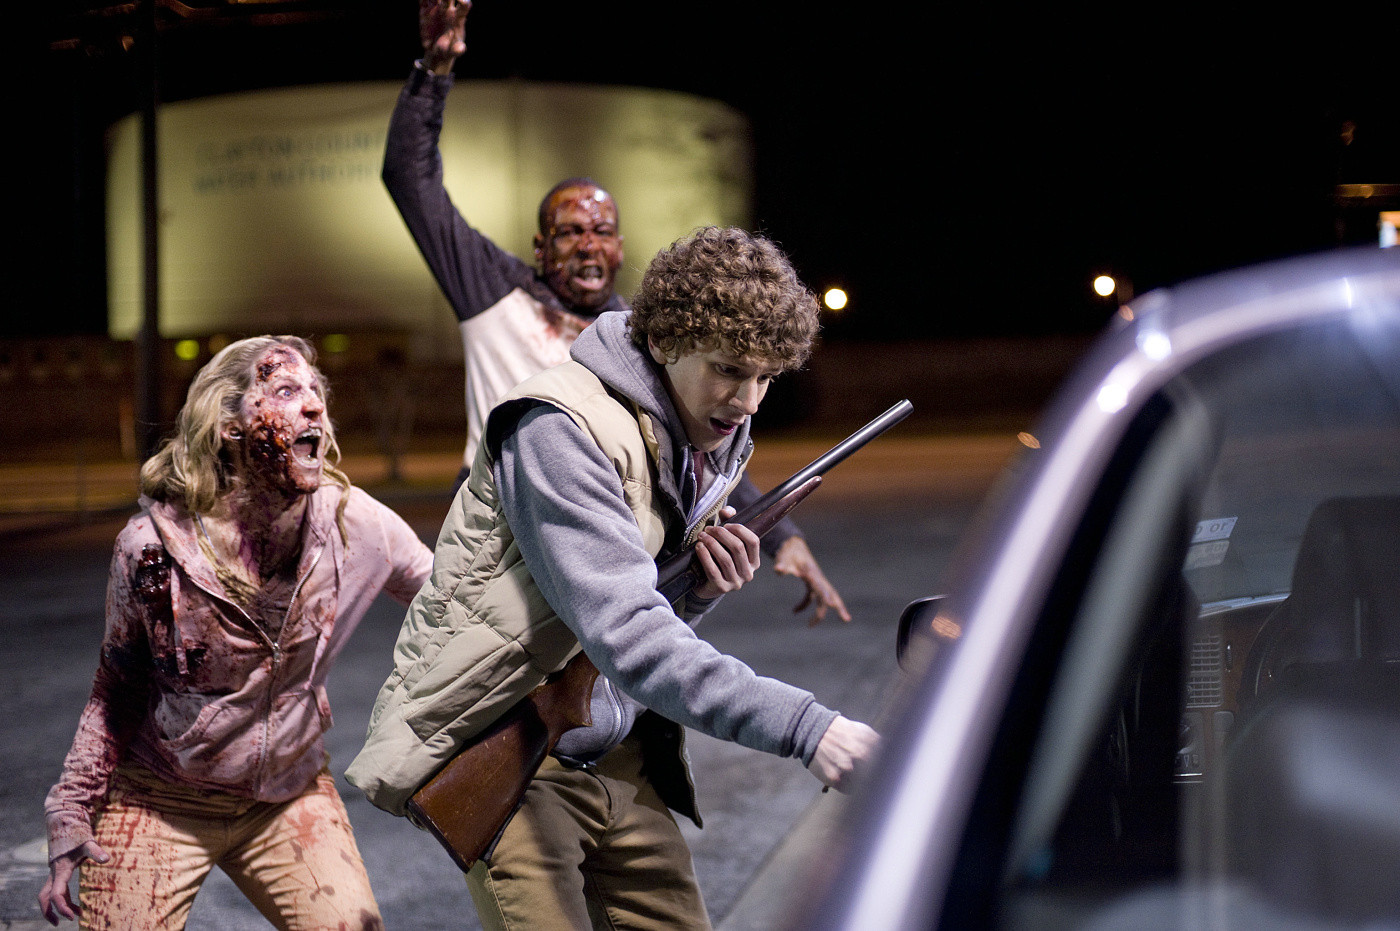 Watch Movie Zombieland For Free